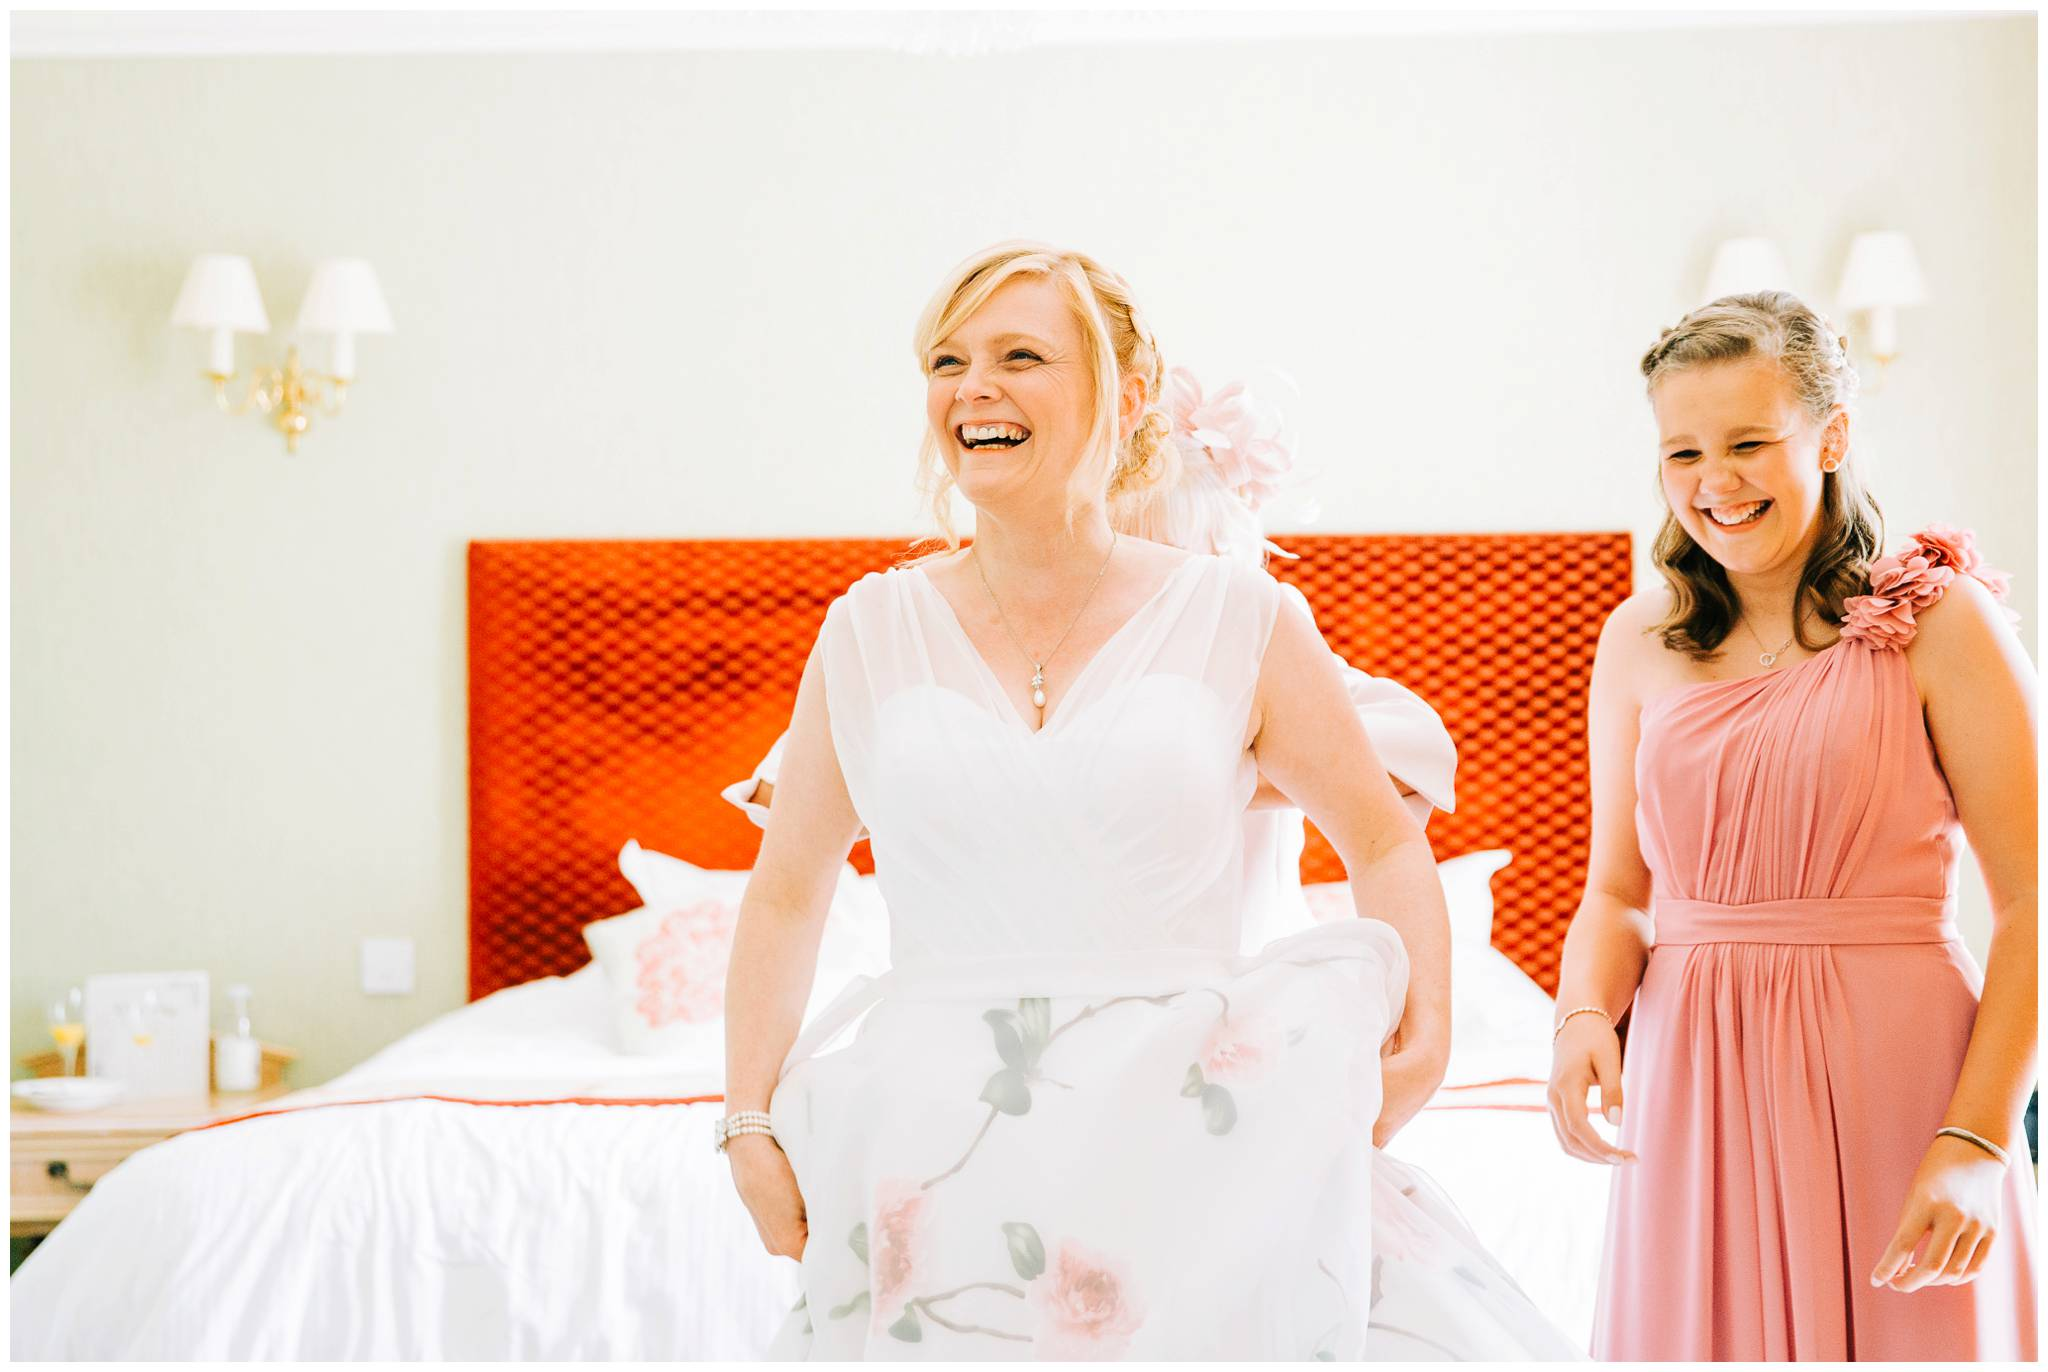 Natural wedding photography Manchester - Clare Robinson Photography_0168.jpg